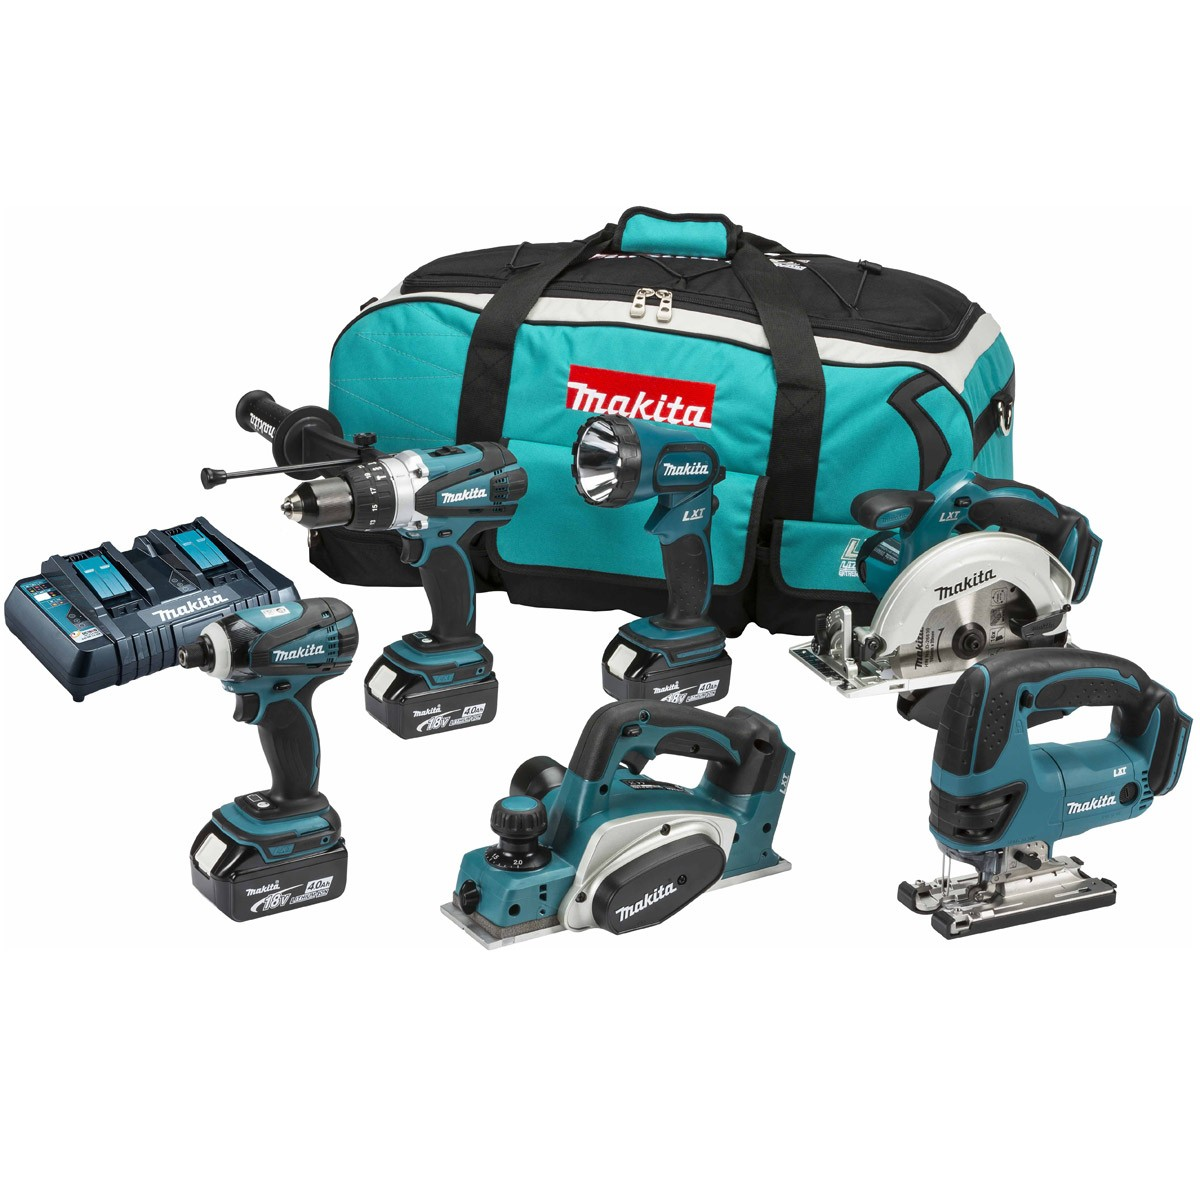 Makita Dlx6012pm 18v 6 Piece Kit Inc 3x 4ah Batts With